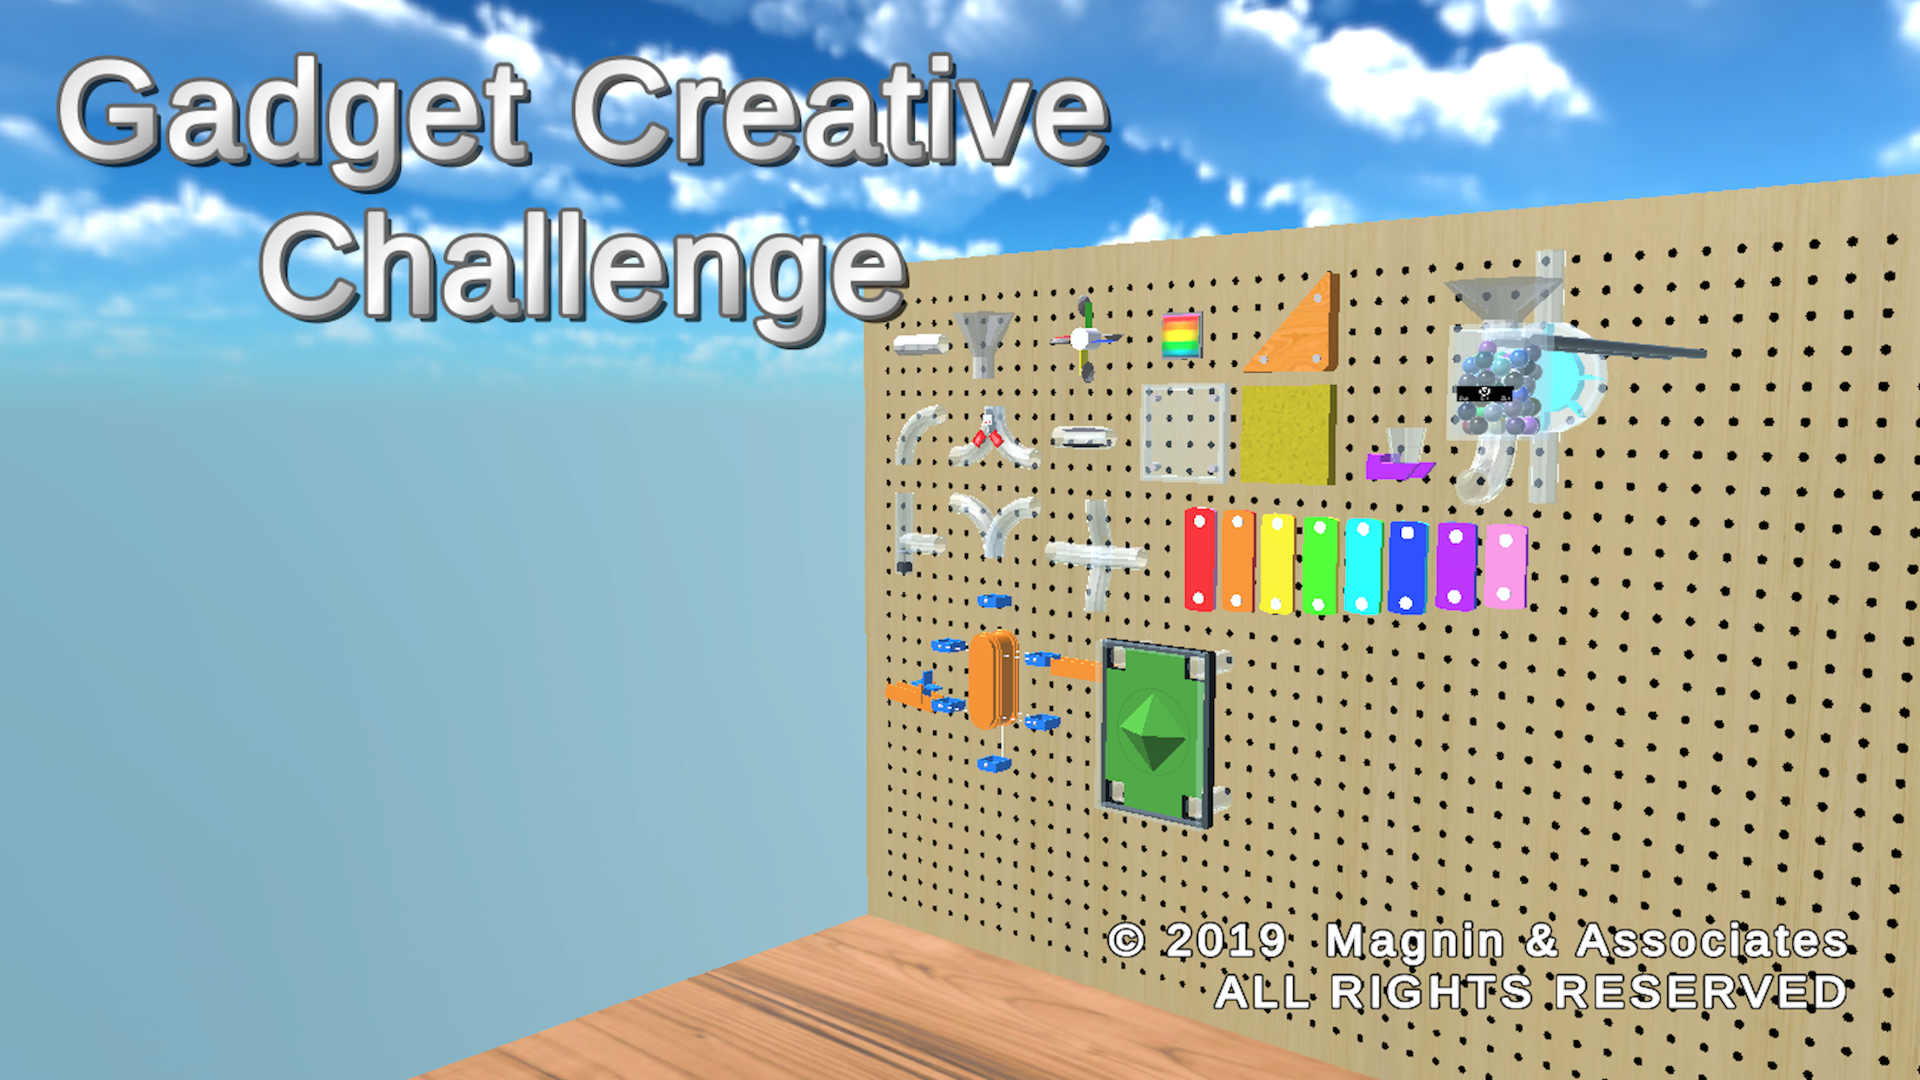 Gadget Creative Challenge for iOS, Android, and Win10 PC Image